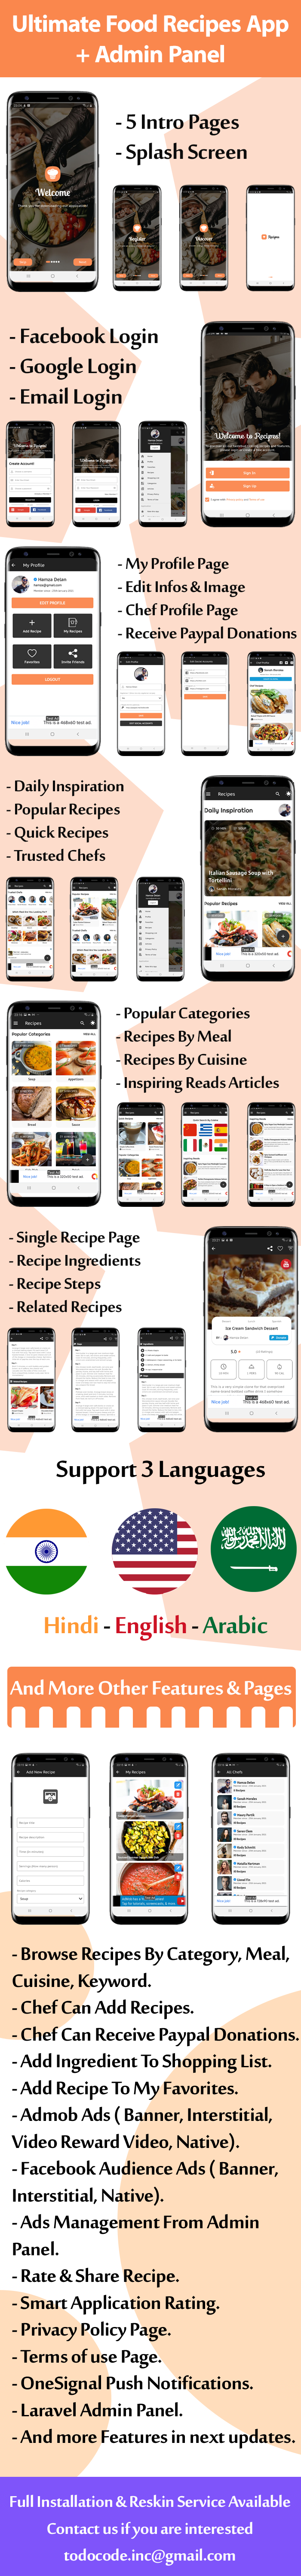 Ultimate Food Recipes App with Admin Panel - 3